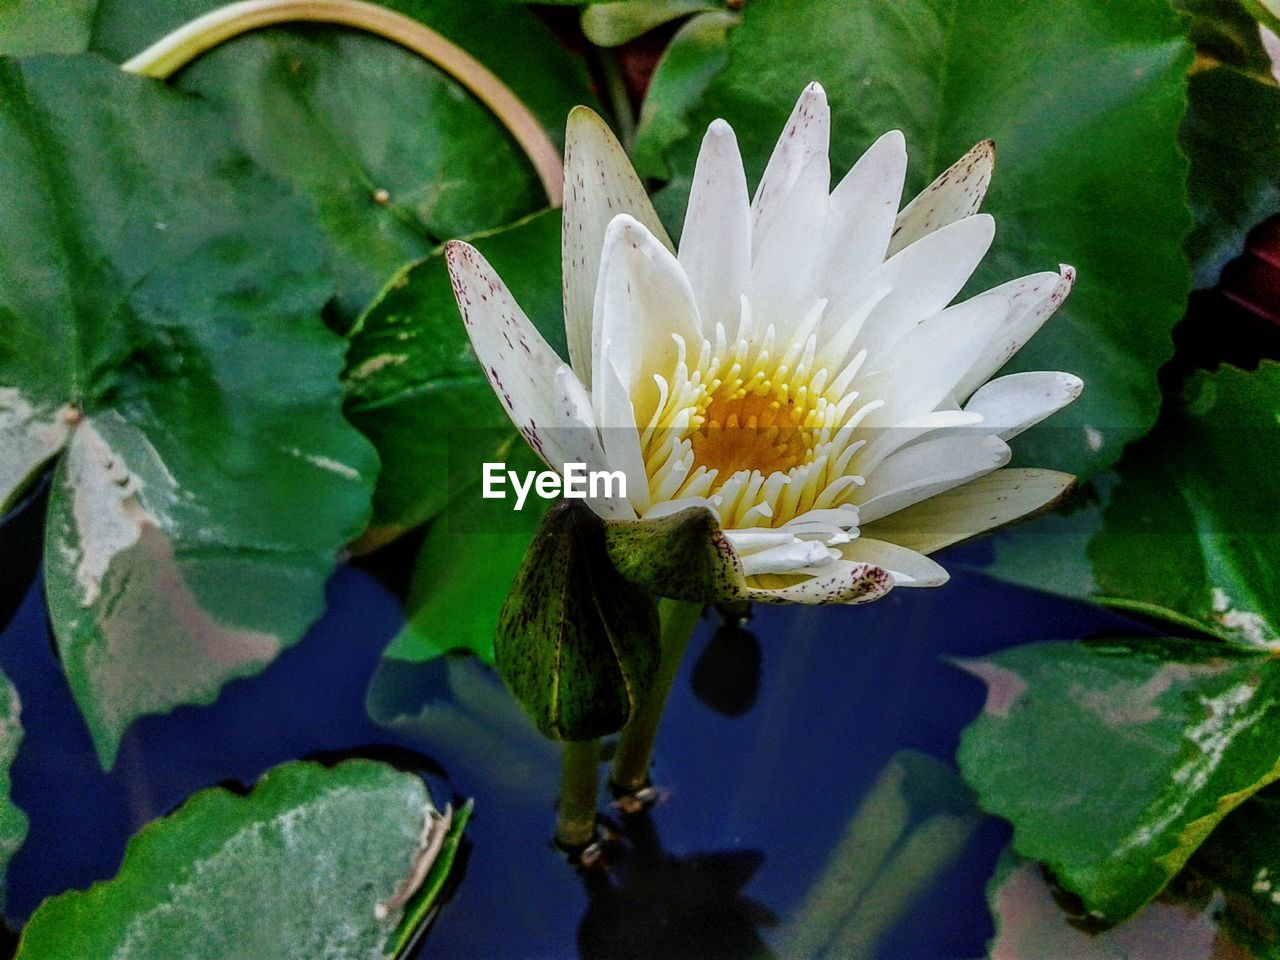 flowering plant, flower, plant, leaf, plant part, fragility, beauty in nature, vulnerability, petal, growth, freshness, close-up, flower head, inflorescence, water, pollen, nature, white color, no people, pond, floating on water, purple